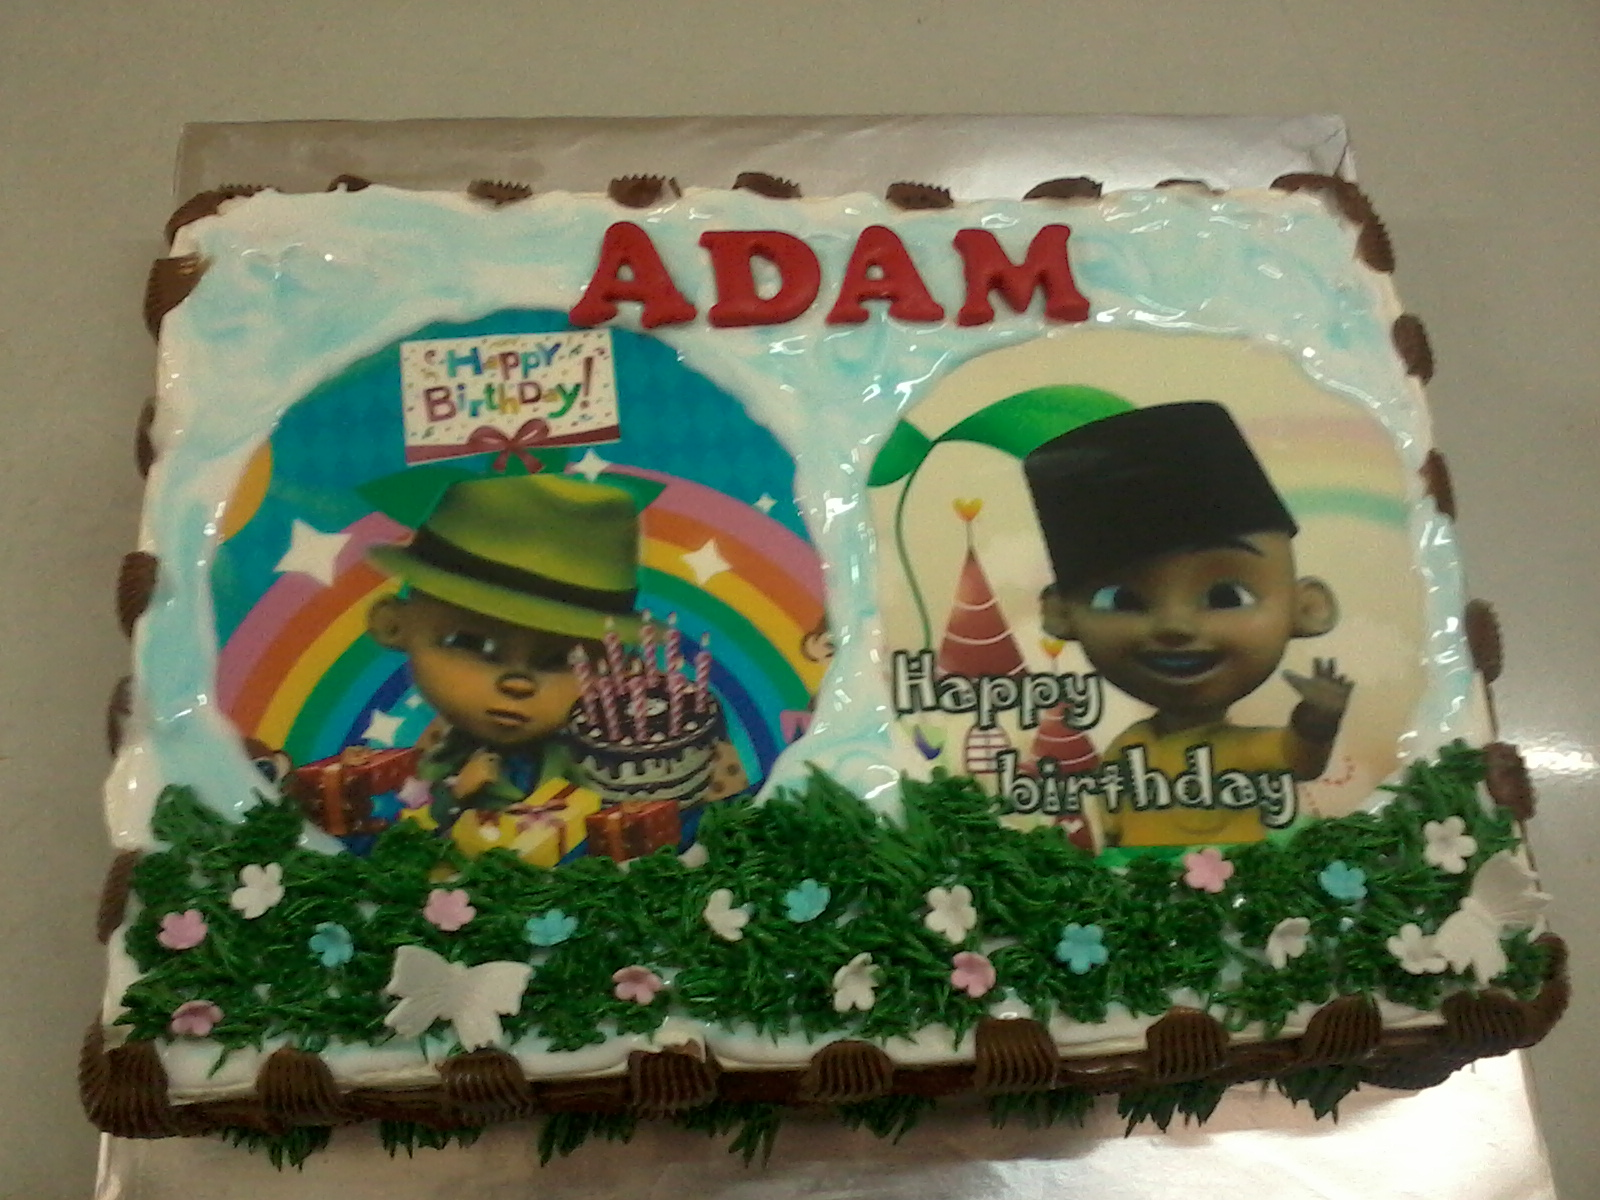 This cake was ordered by Ms. Azaria Bulin for her sons birthday.